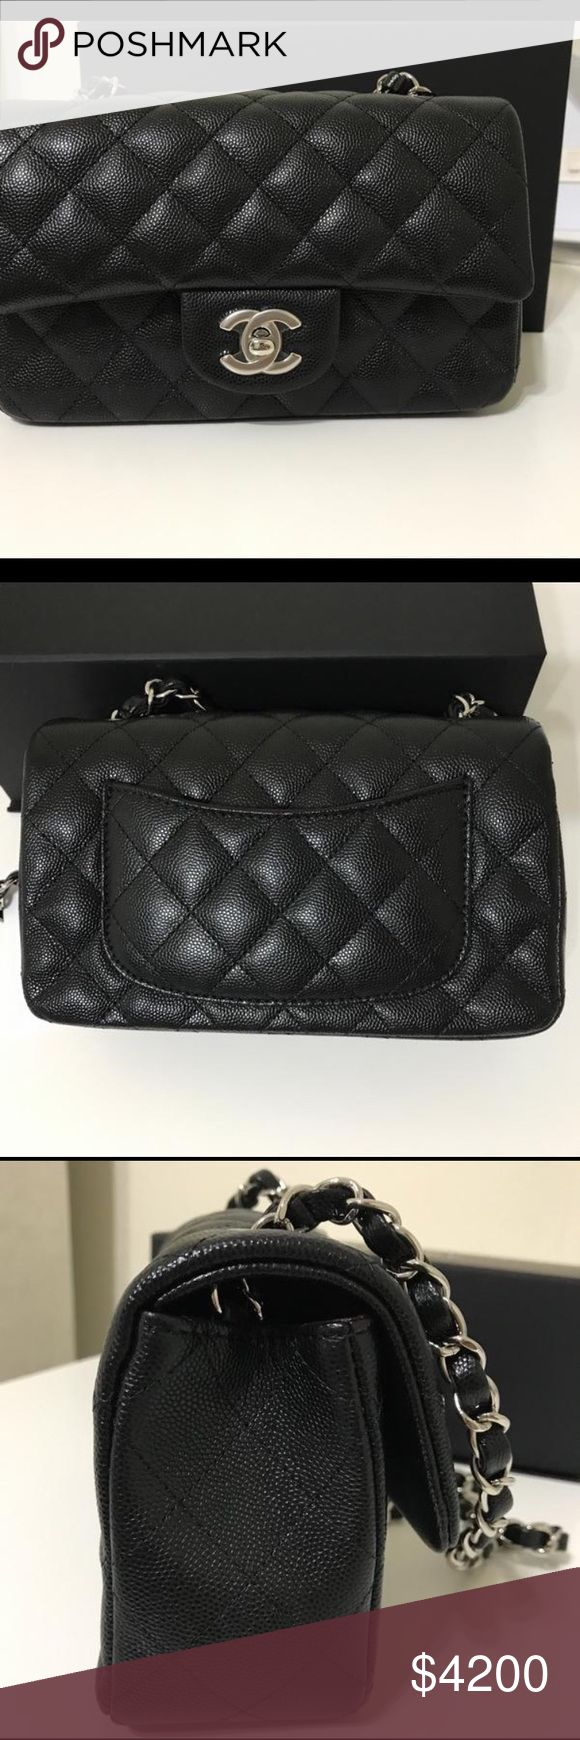 """Chanel Caviar Rectangular Black Cross Body Bag ❗️❗️ On Sale ❗️❗️ Chanel 17b Caviar Rectangular Mini With Silver Hardware Black Cross Body Bag  Condition: Brand New Size 7.75""""L x 2.75""""H x 4.75""""W 100% authentic or your money back guaranteed. Cheaper if you buy it out of posh through PayPal, email me at luxurydesigners12 yahoo com CHANEL Bags Shoulder Bags"""